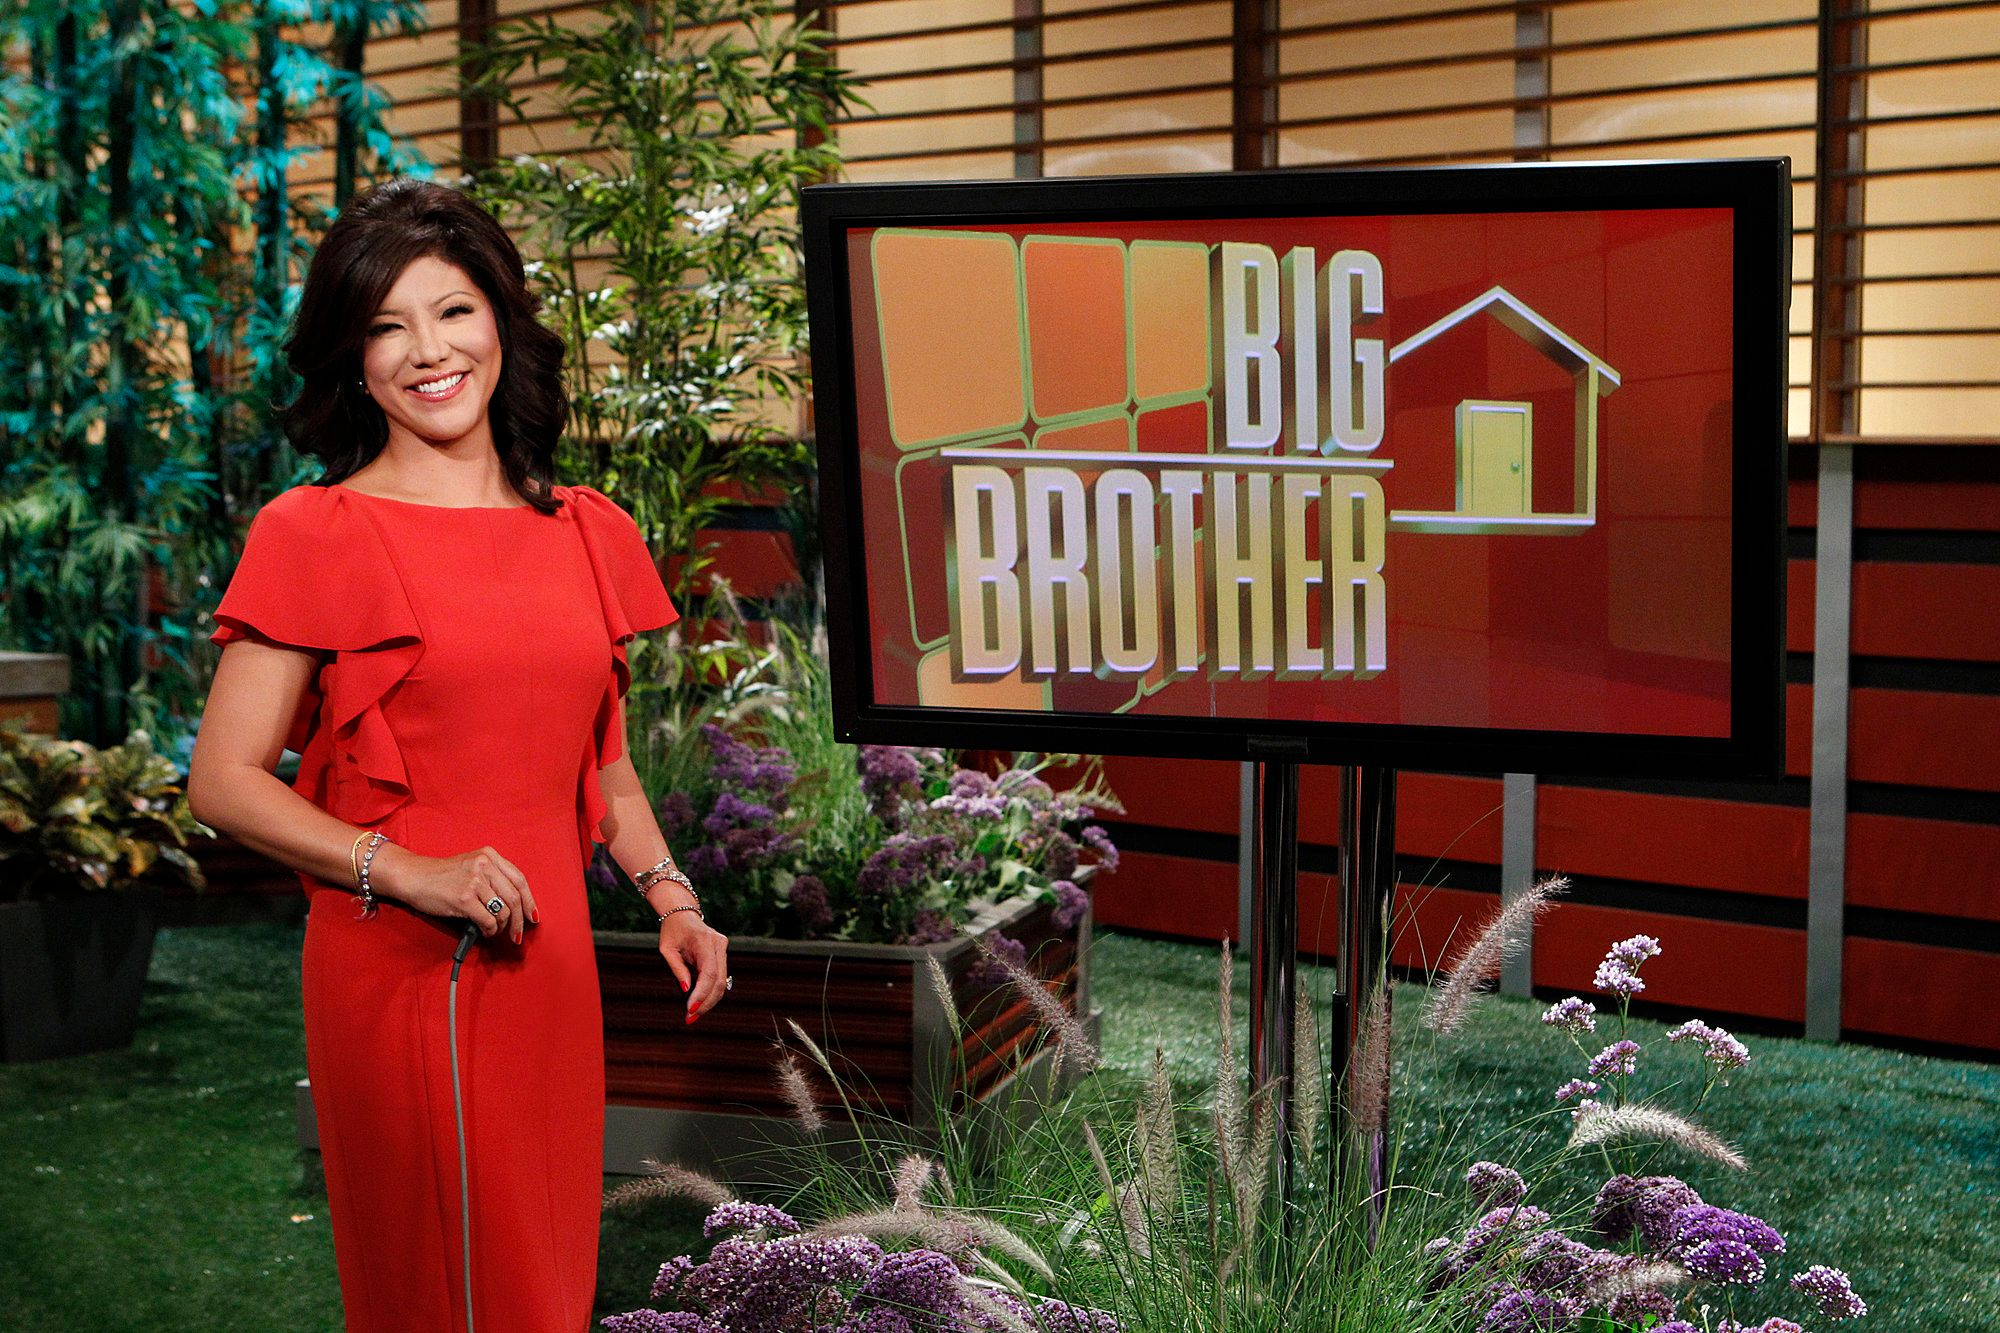 LOS ANGELES - JULY 2: BIG BROTHER --  This season of BIG BROTHER will be broadcast three nights weekly, on Sundays (8:00-9:00 PM, ET/PT), Wednesdays (8:00–9:00 PM, ET/PT) and the LIVE eviction show, hosted by Julie Chen, Thursdays (8:00–9:00 PM, live ET/delayed PT).  (Photo by Sonja Flemming/CBS via Getty Images)